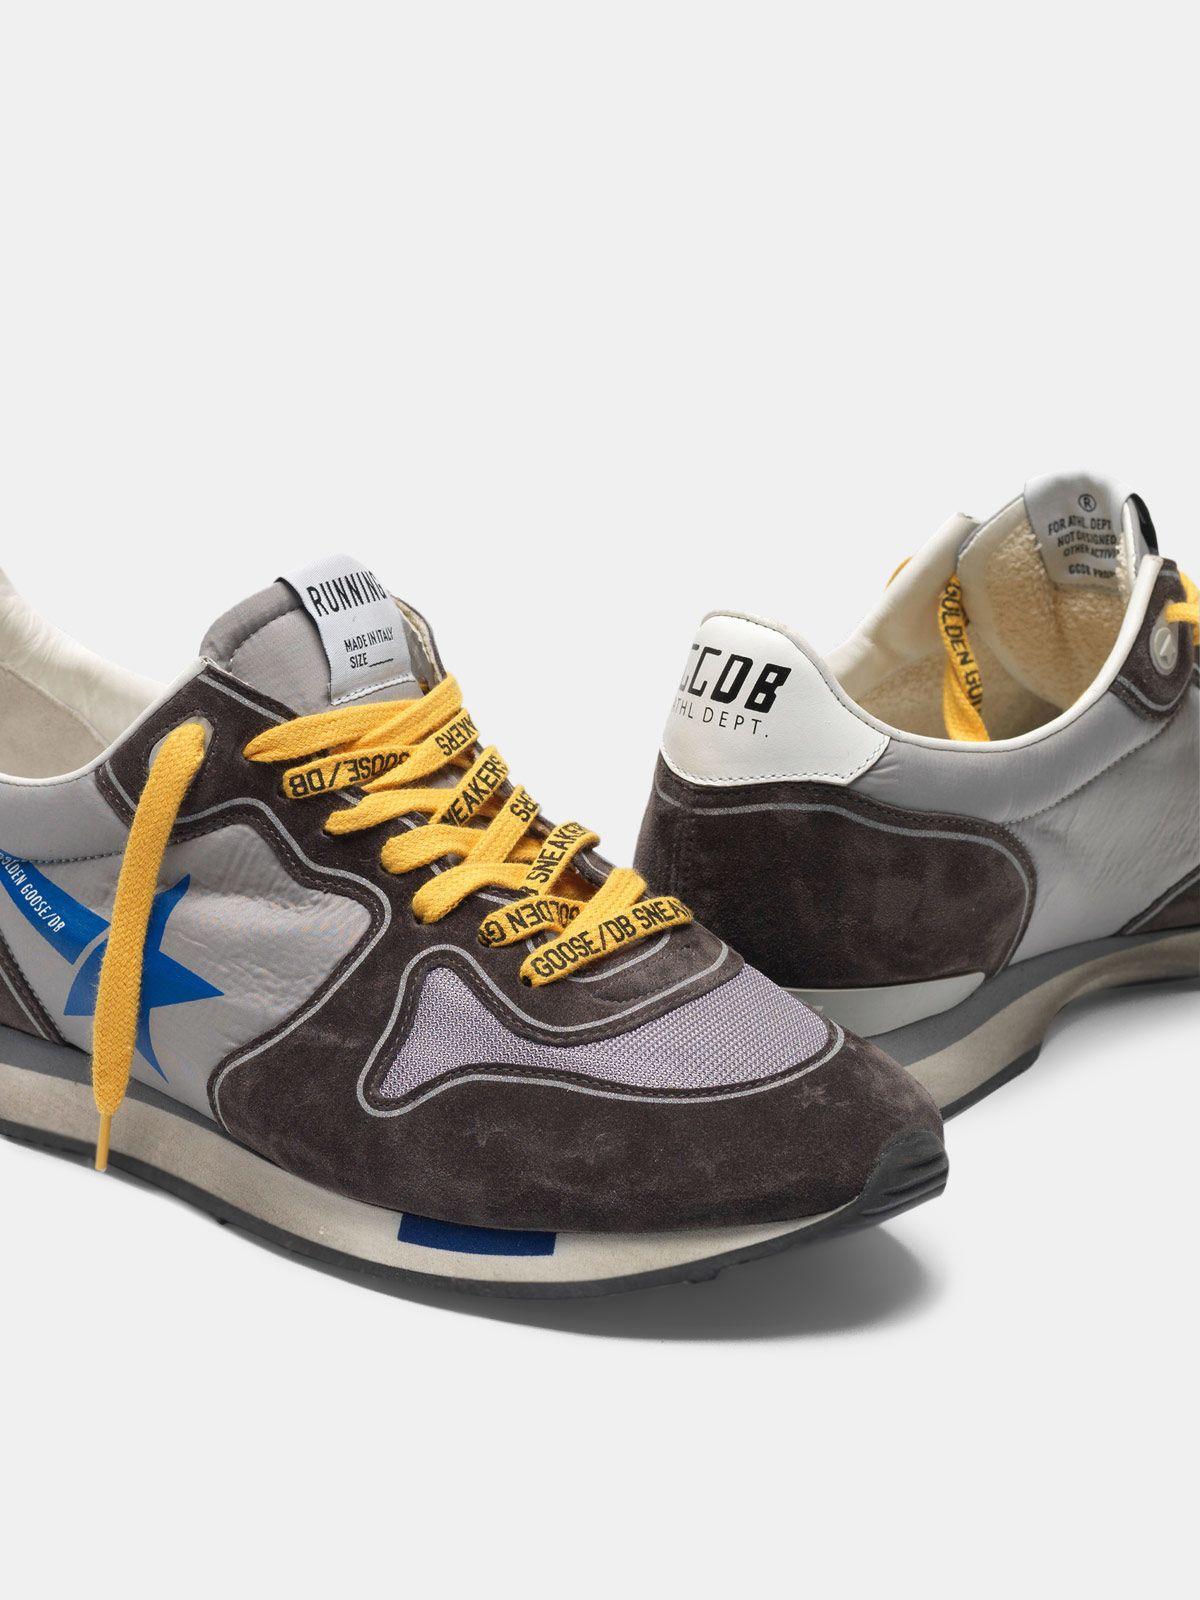 Golden Goose - Running sneakers in suede with nylon and mesh insert in